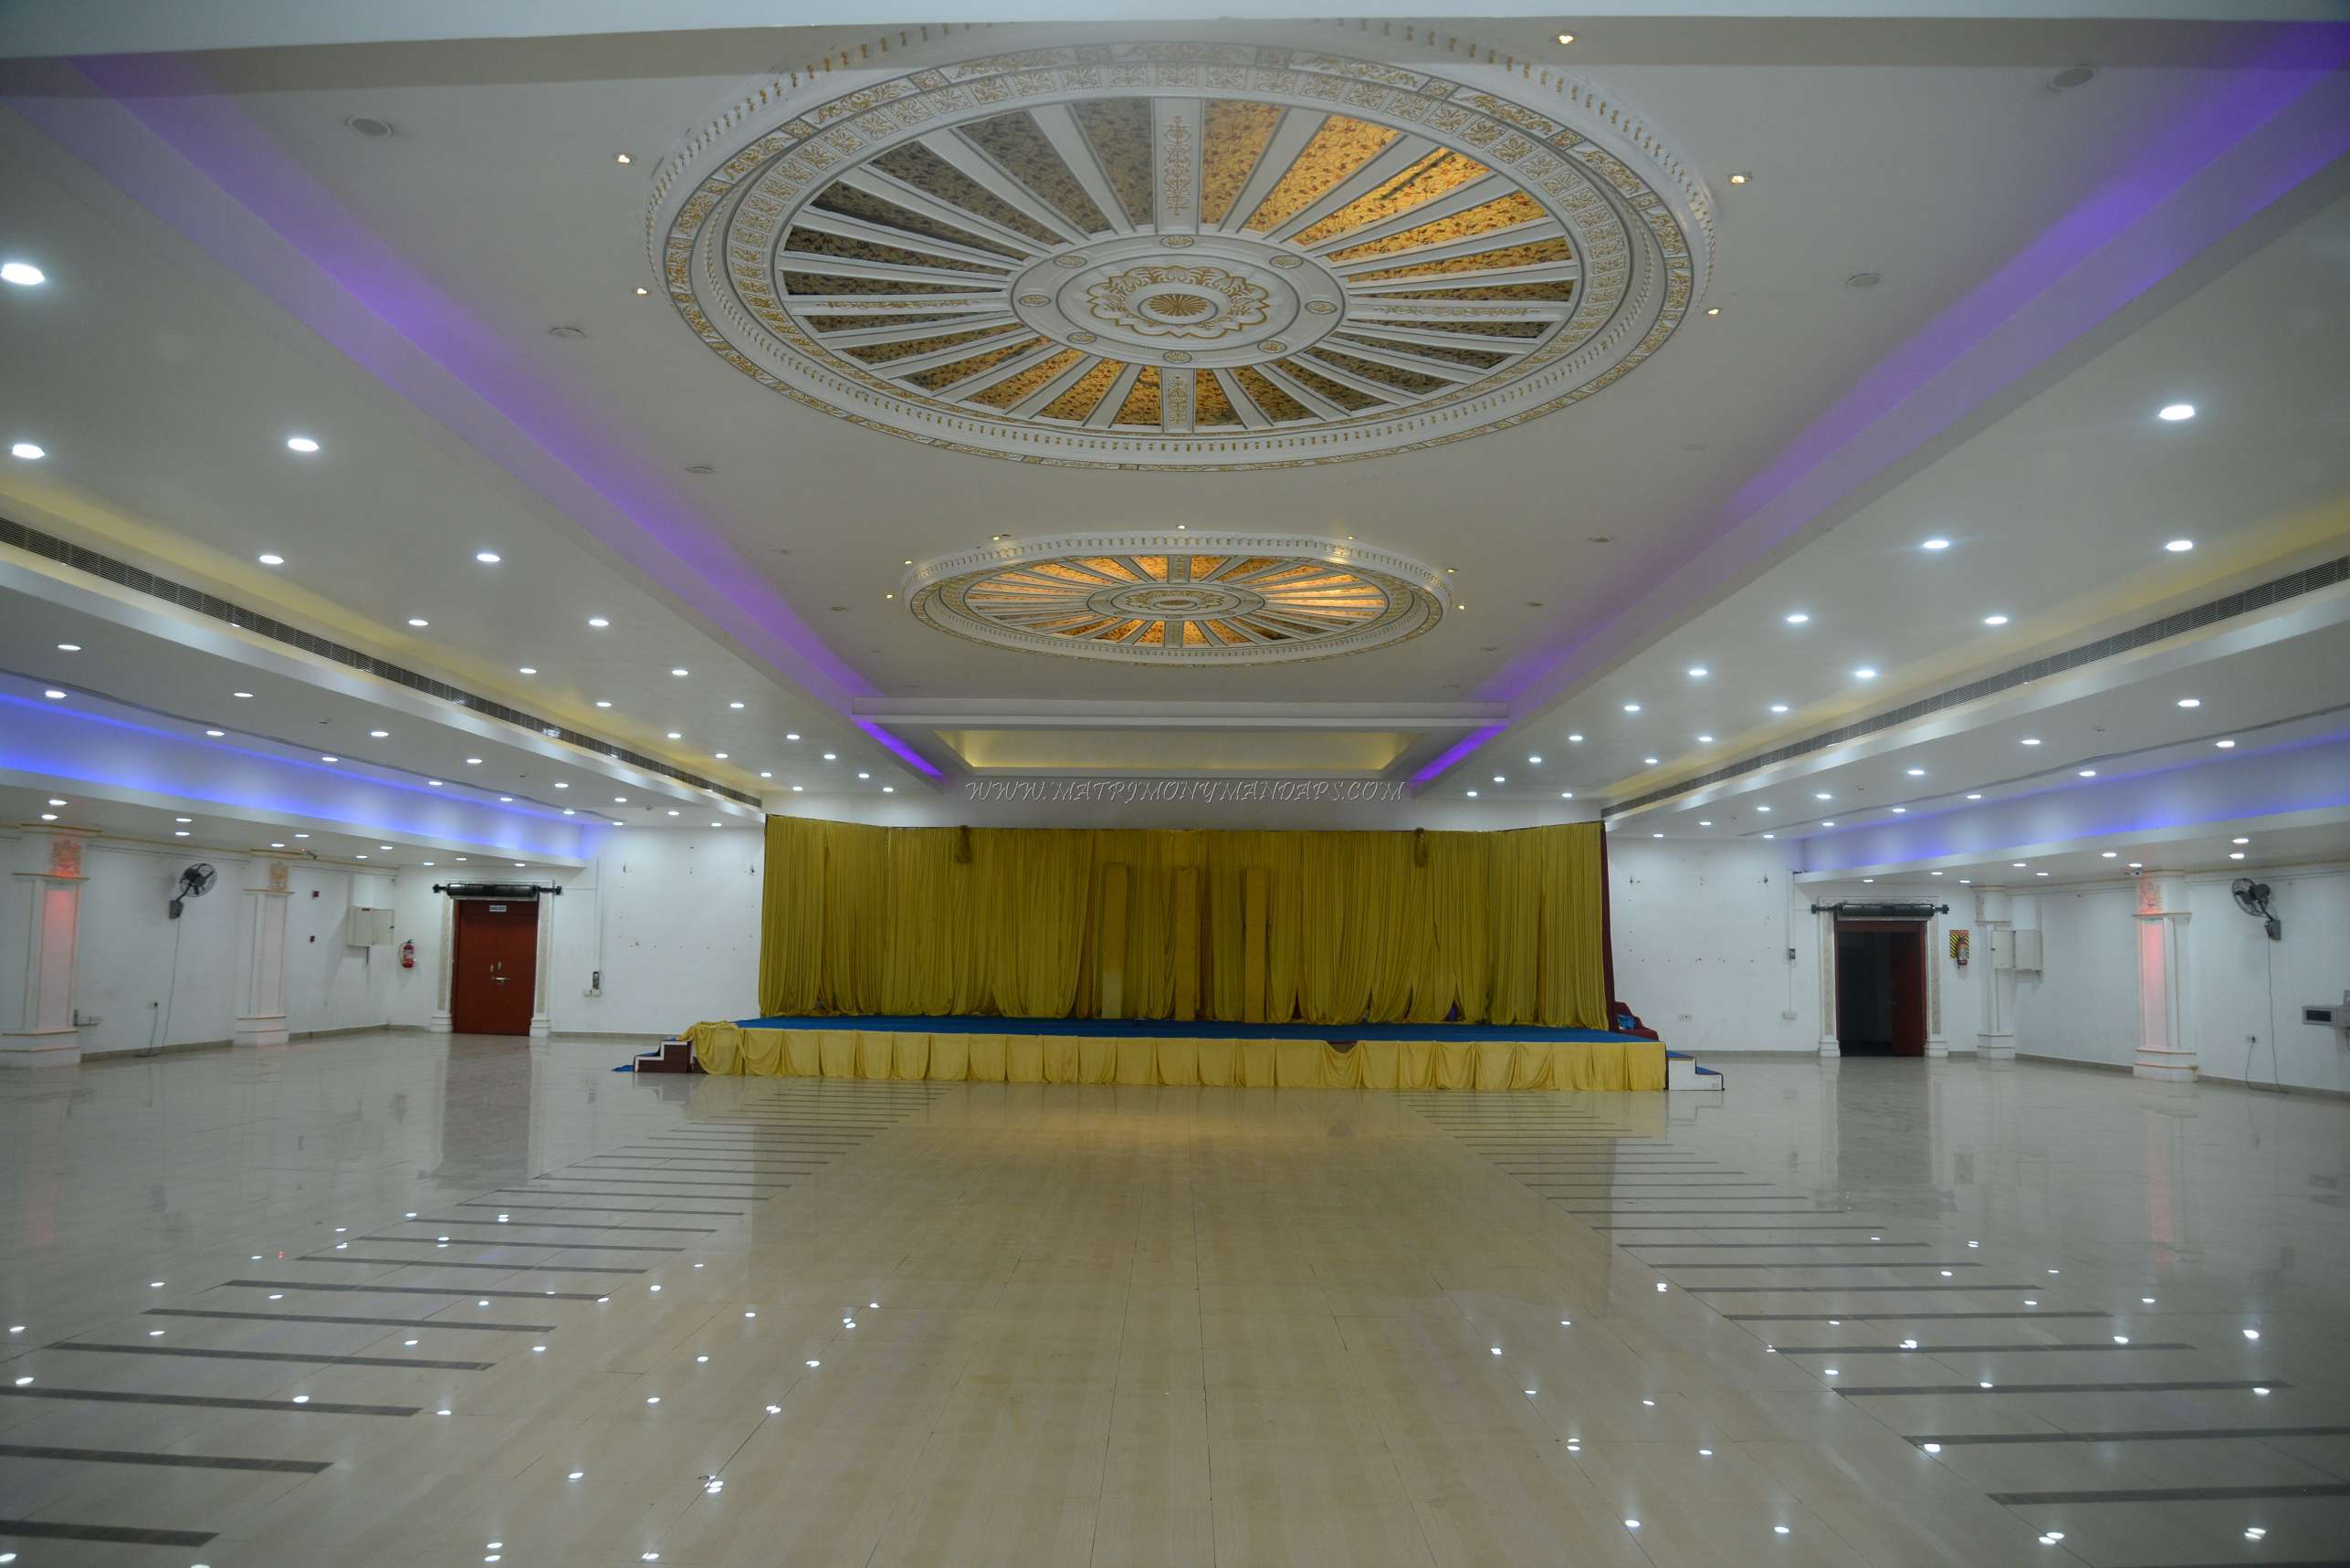 Find the availability of the EVP Rajeswari Marriage Pale 2 (A/C) in Kolapakkam, Chennai and avail special offers